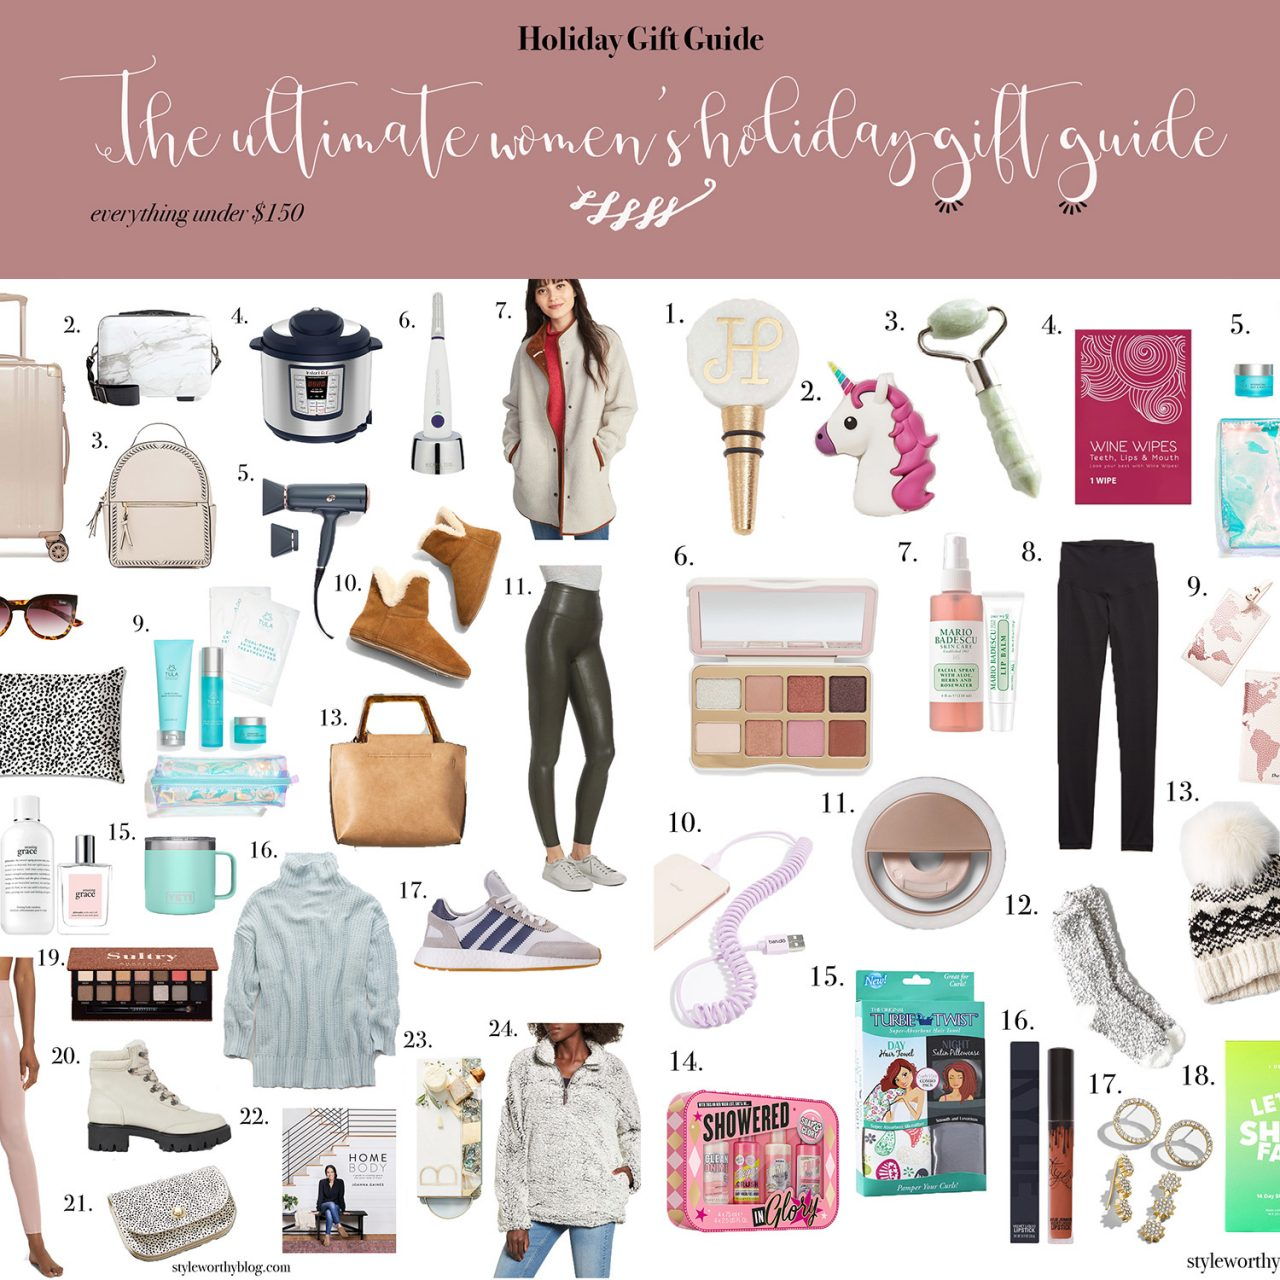 The Ultimate Women's Holiday Gift Guide + Stocking Stuffers for Her